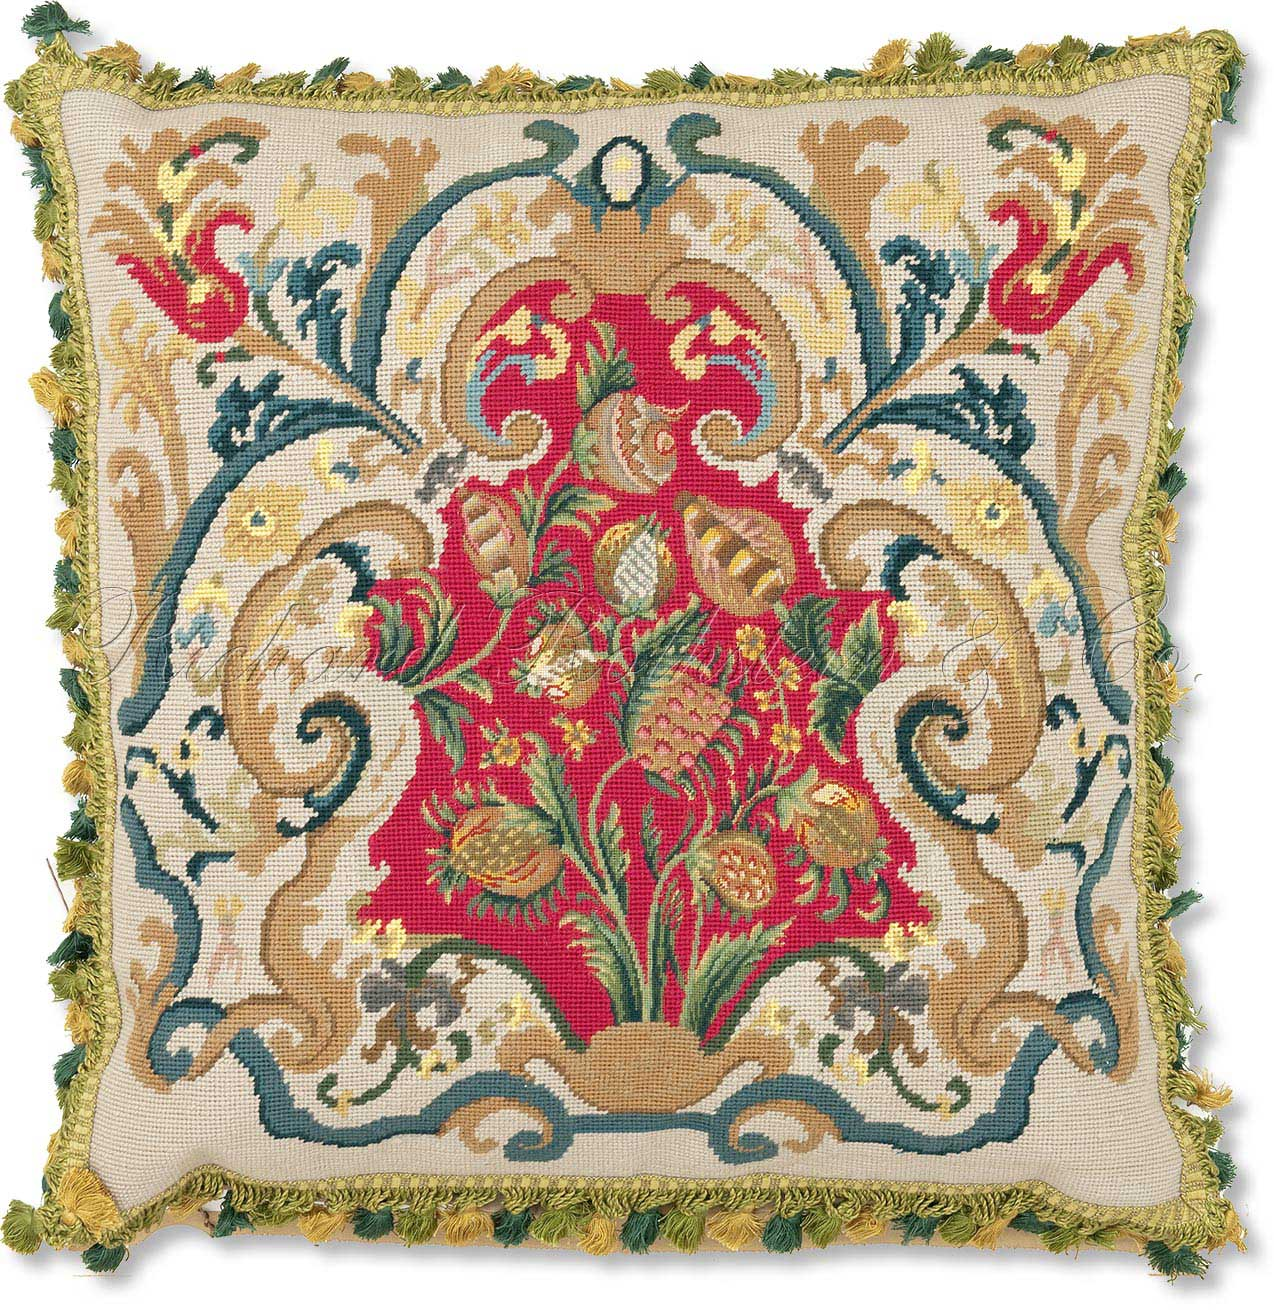 Eye For Design NeedlepointCreating Heirlooms For Your Interiors